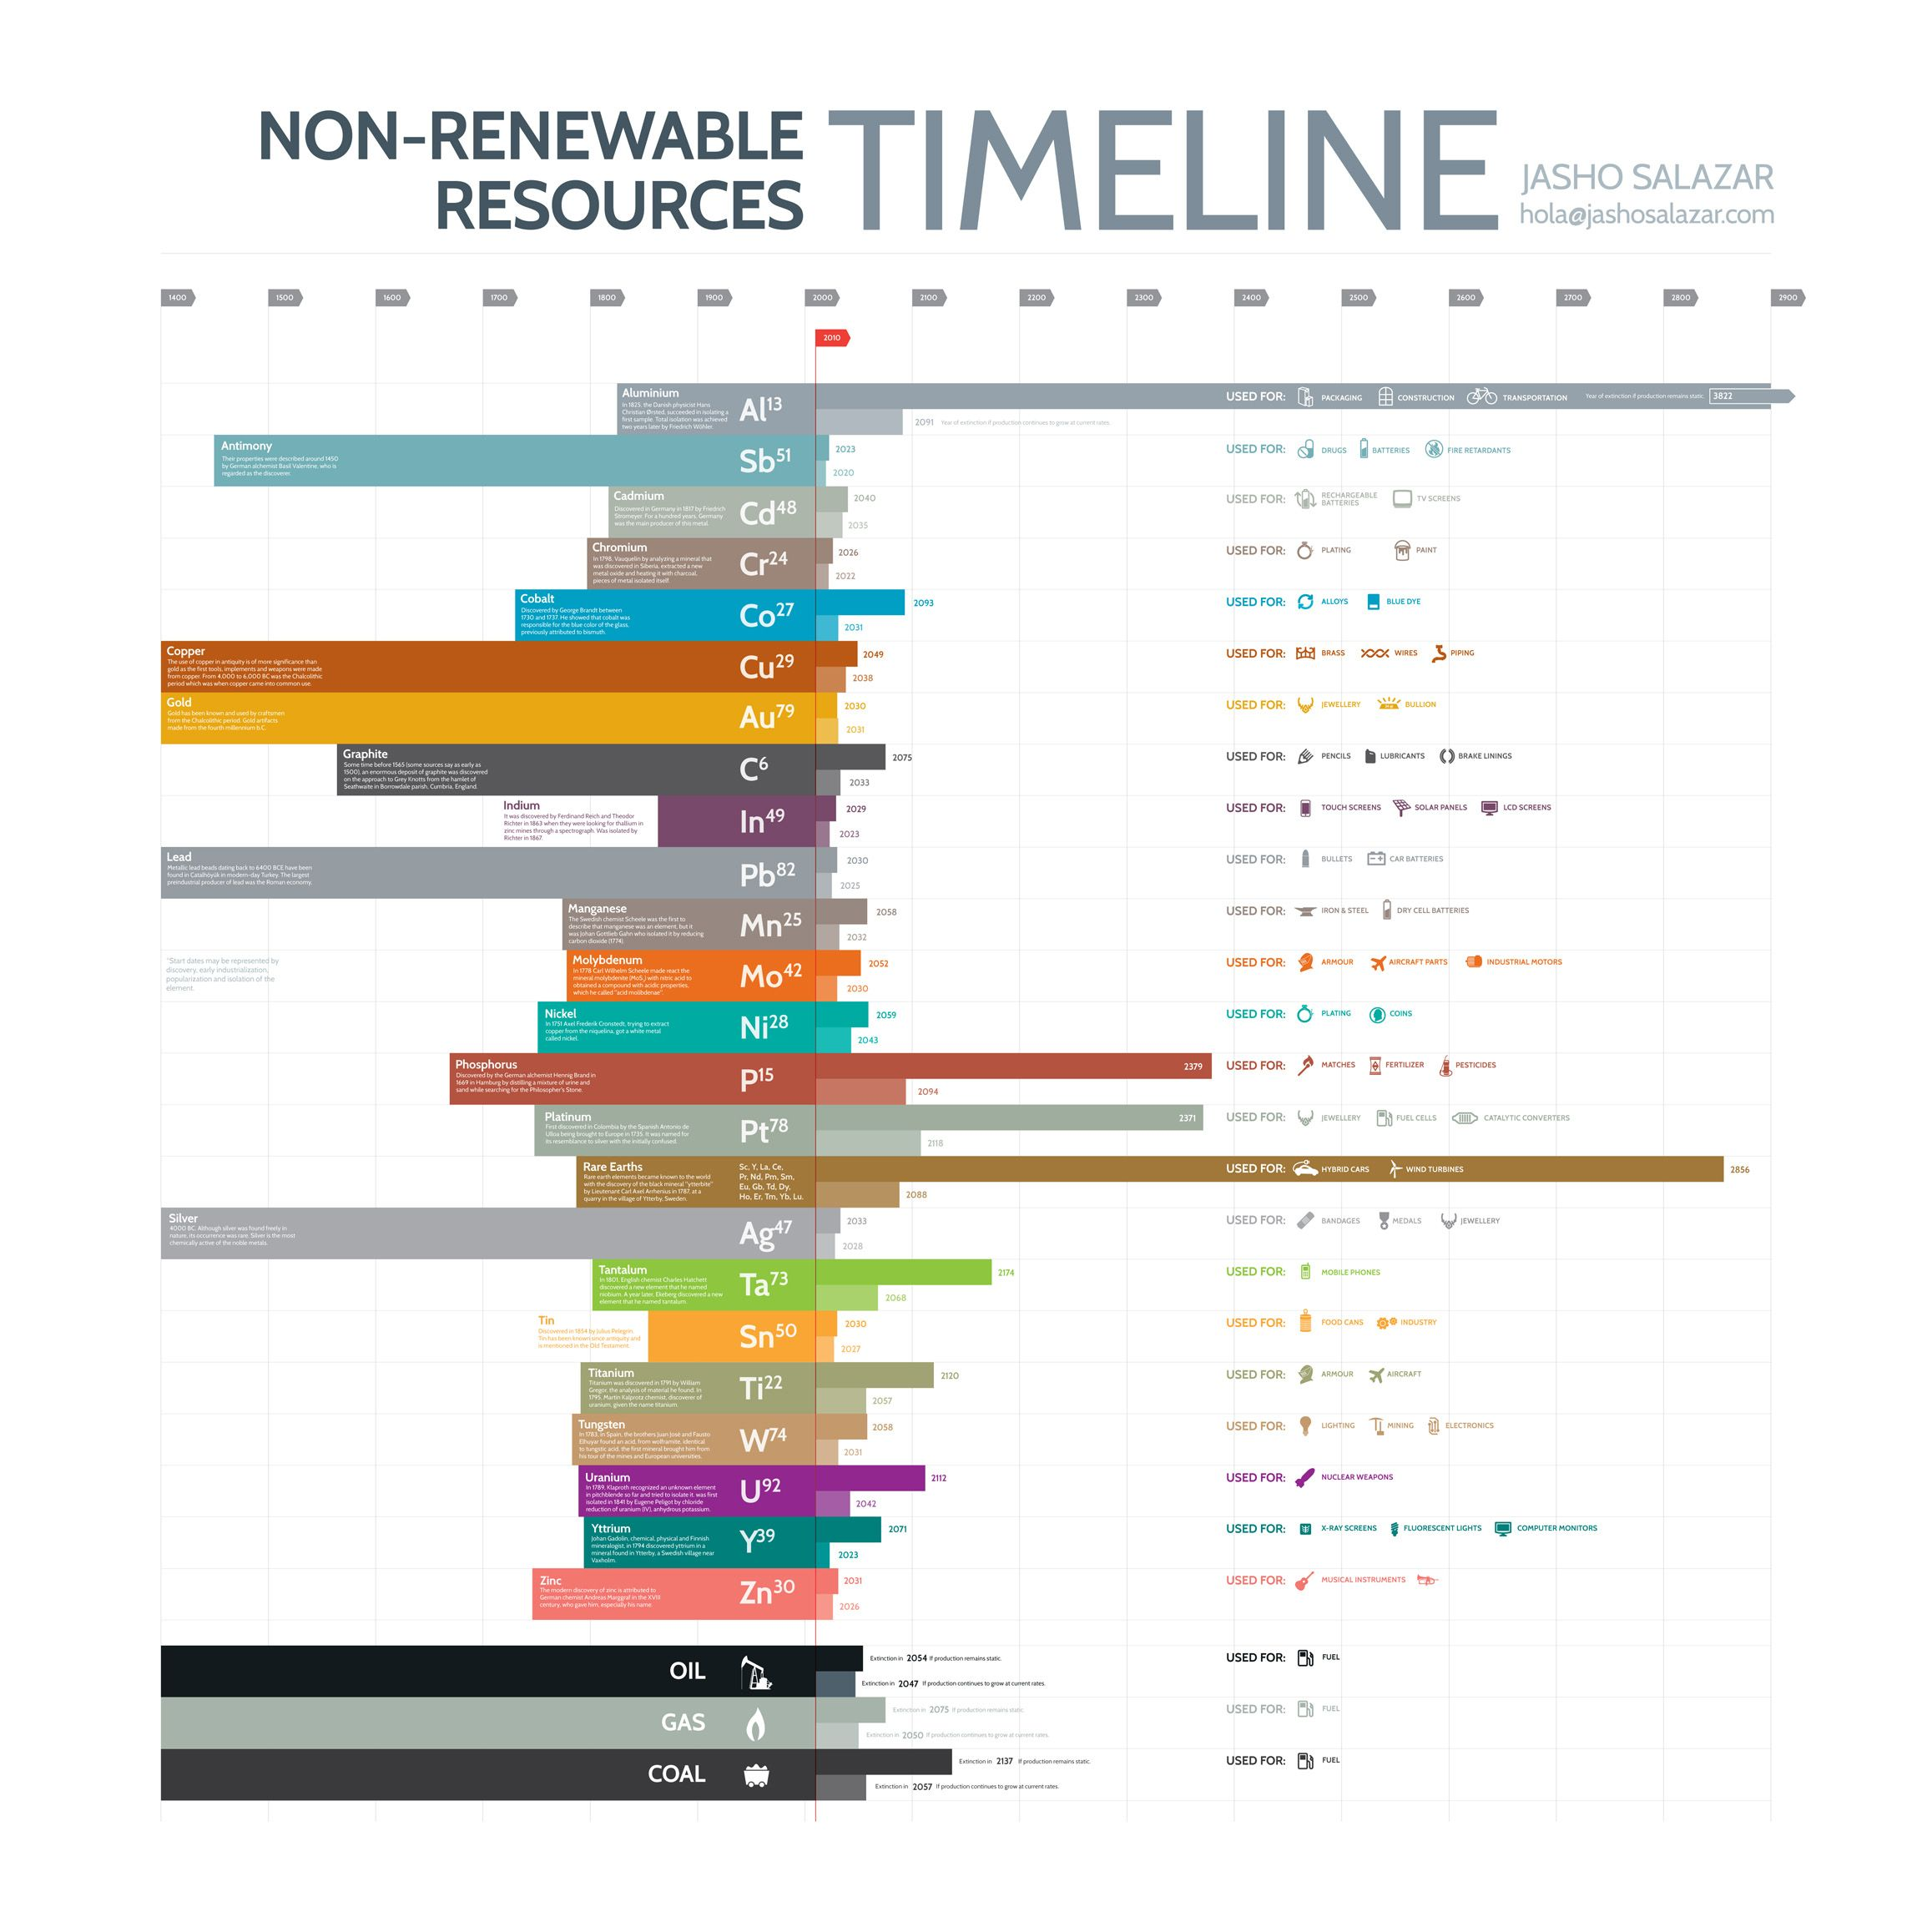 non renewable resources timeline examples of non renewable  non renewable resources timeline examples of non renewable resources